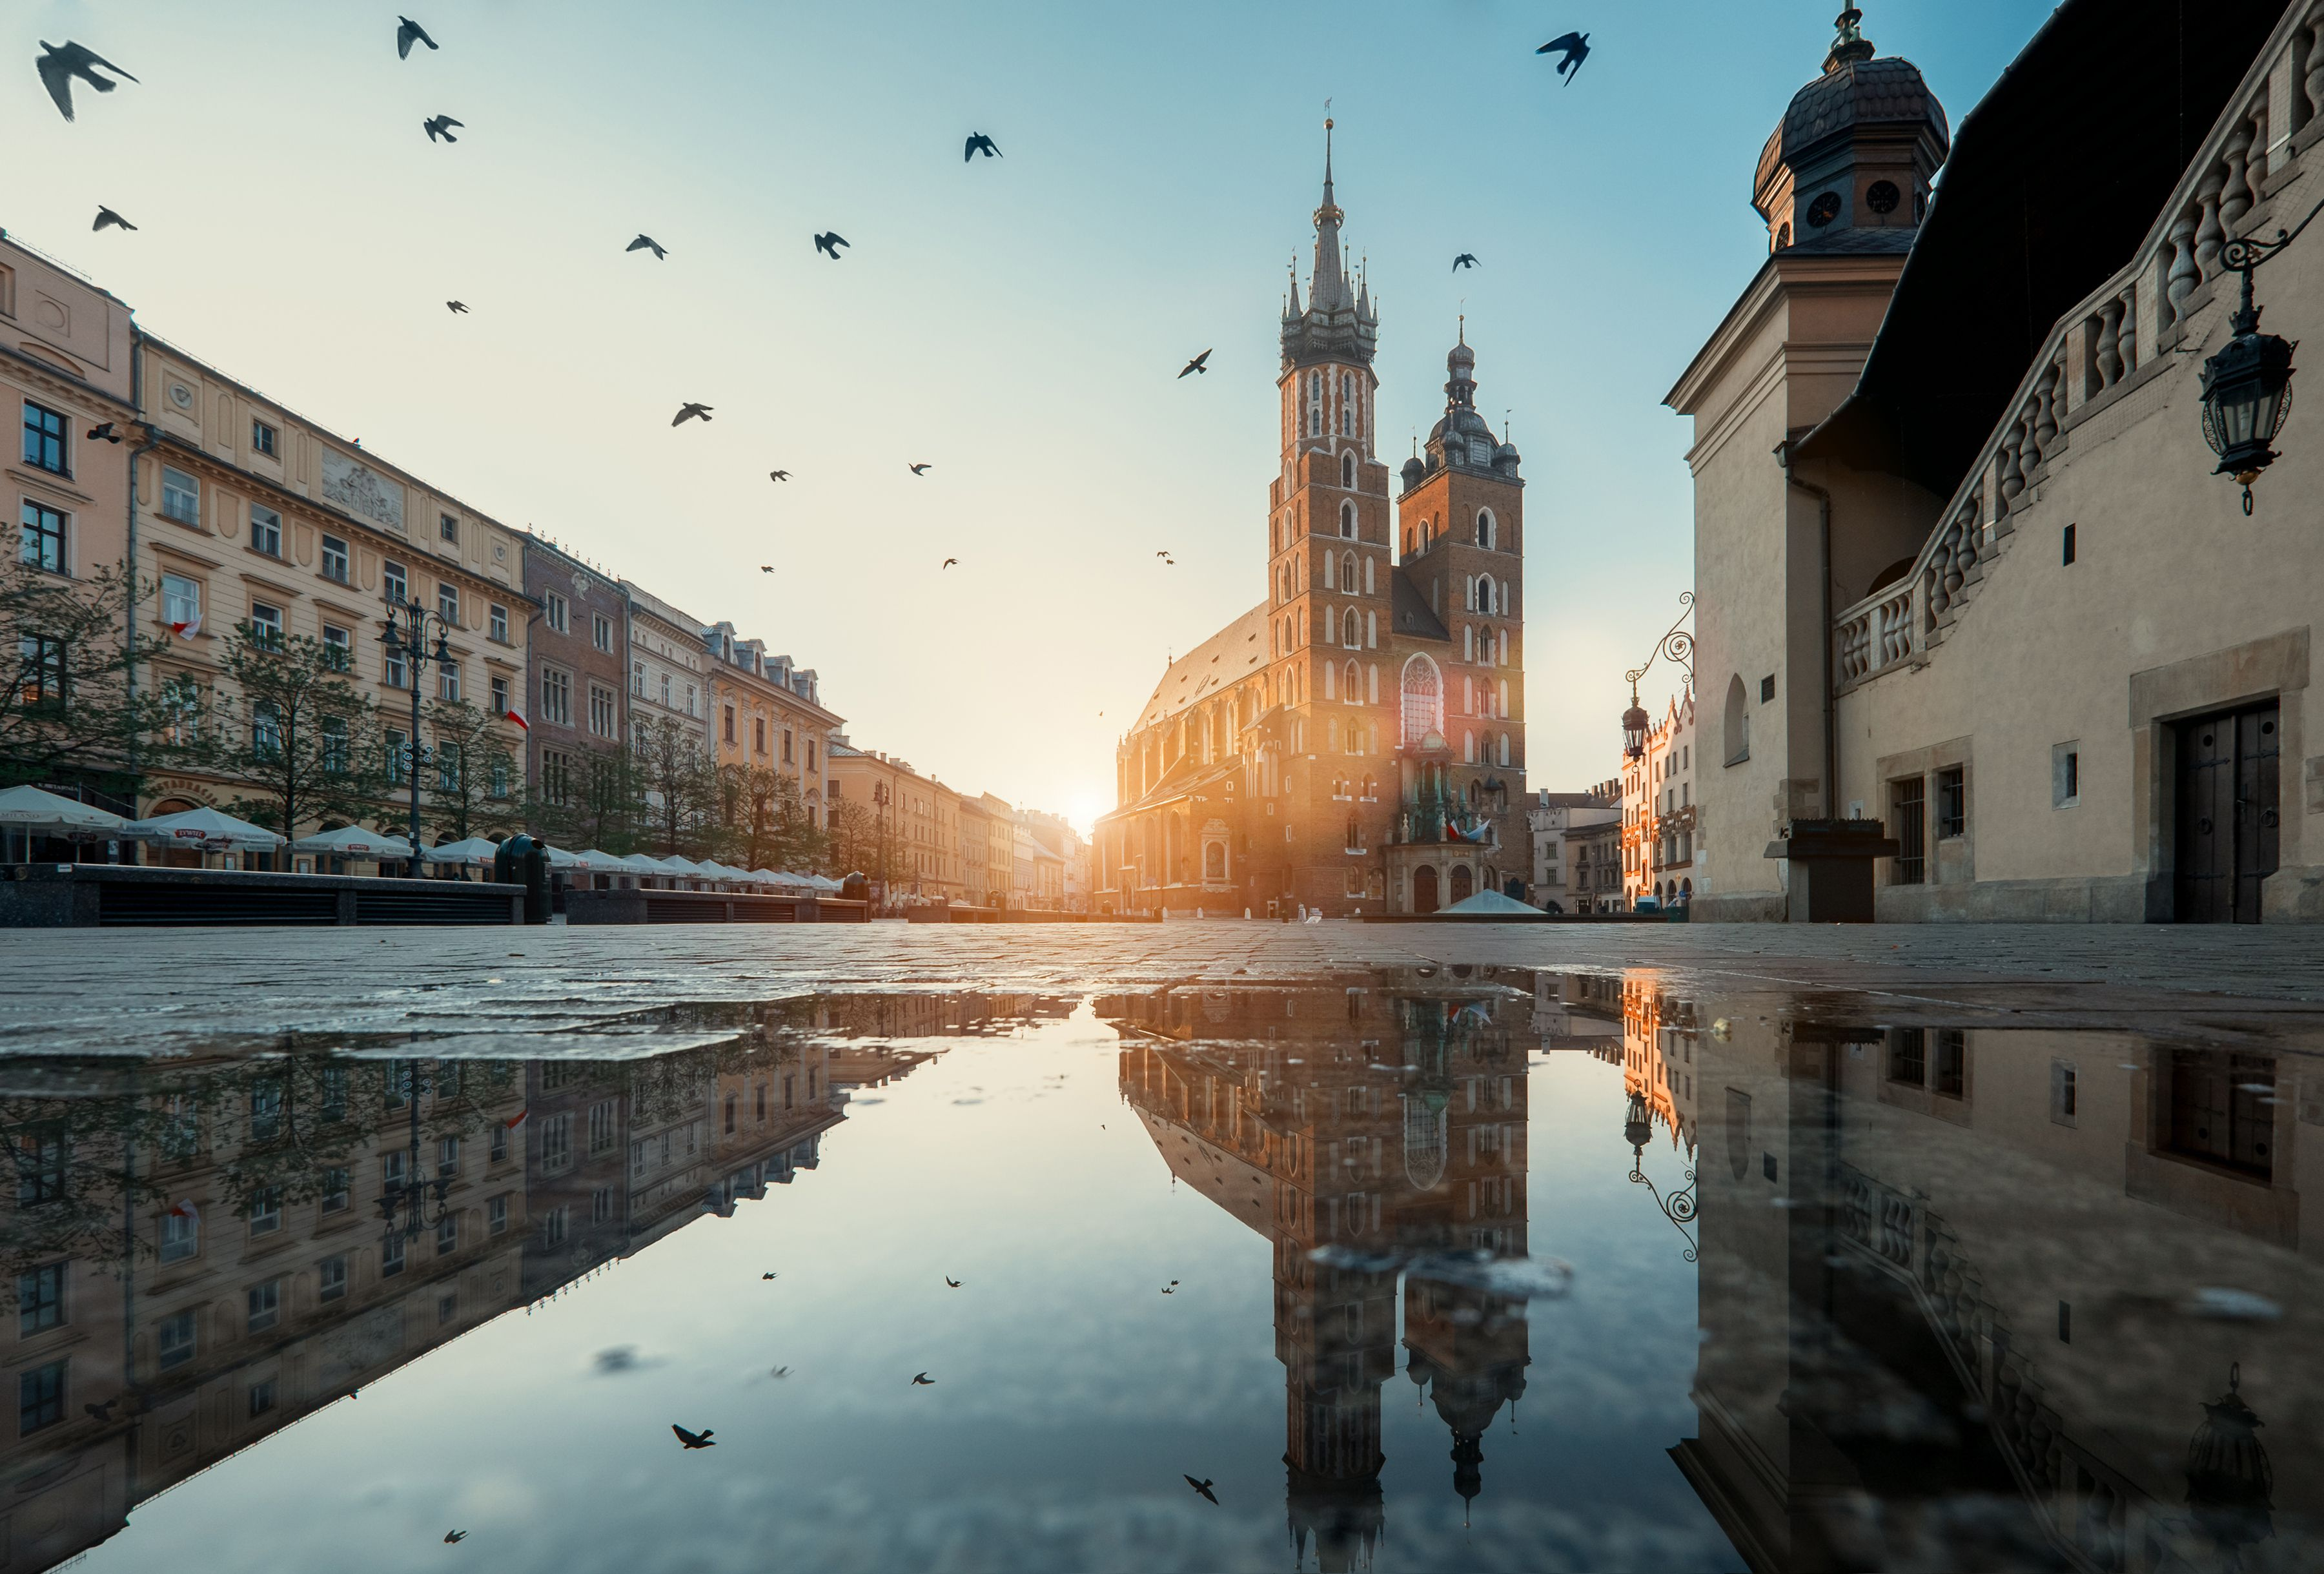 Market square and St. Mary's Basilica in Krakow, Poland